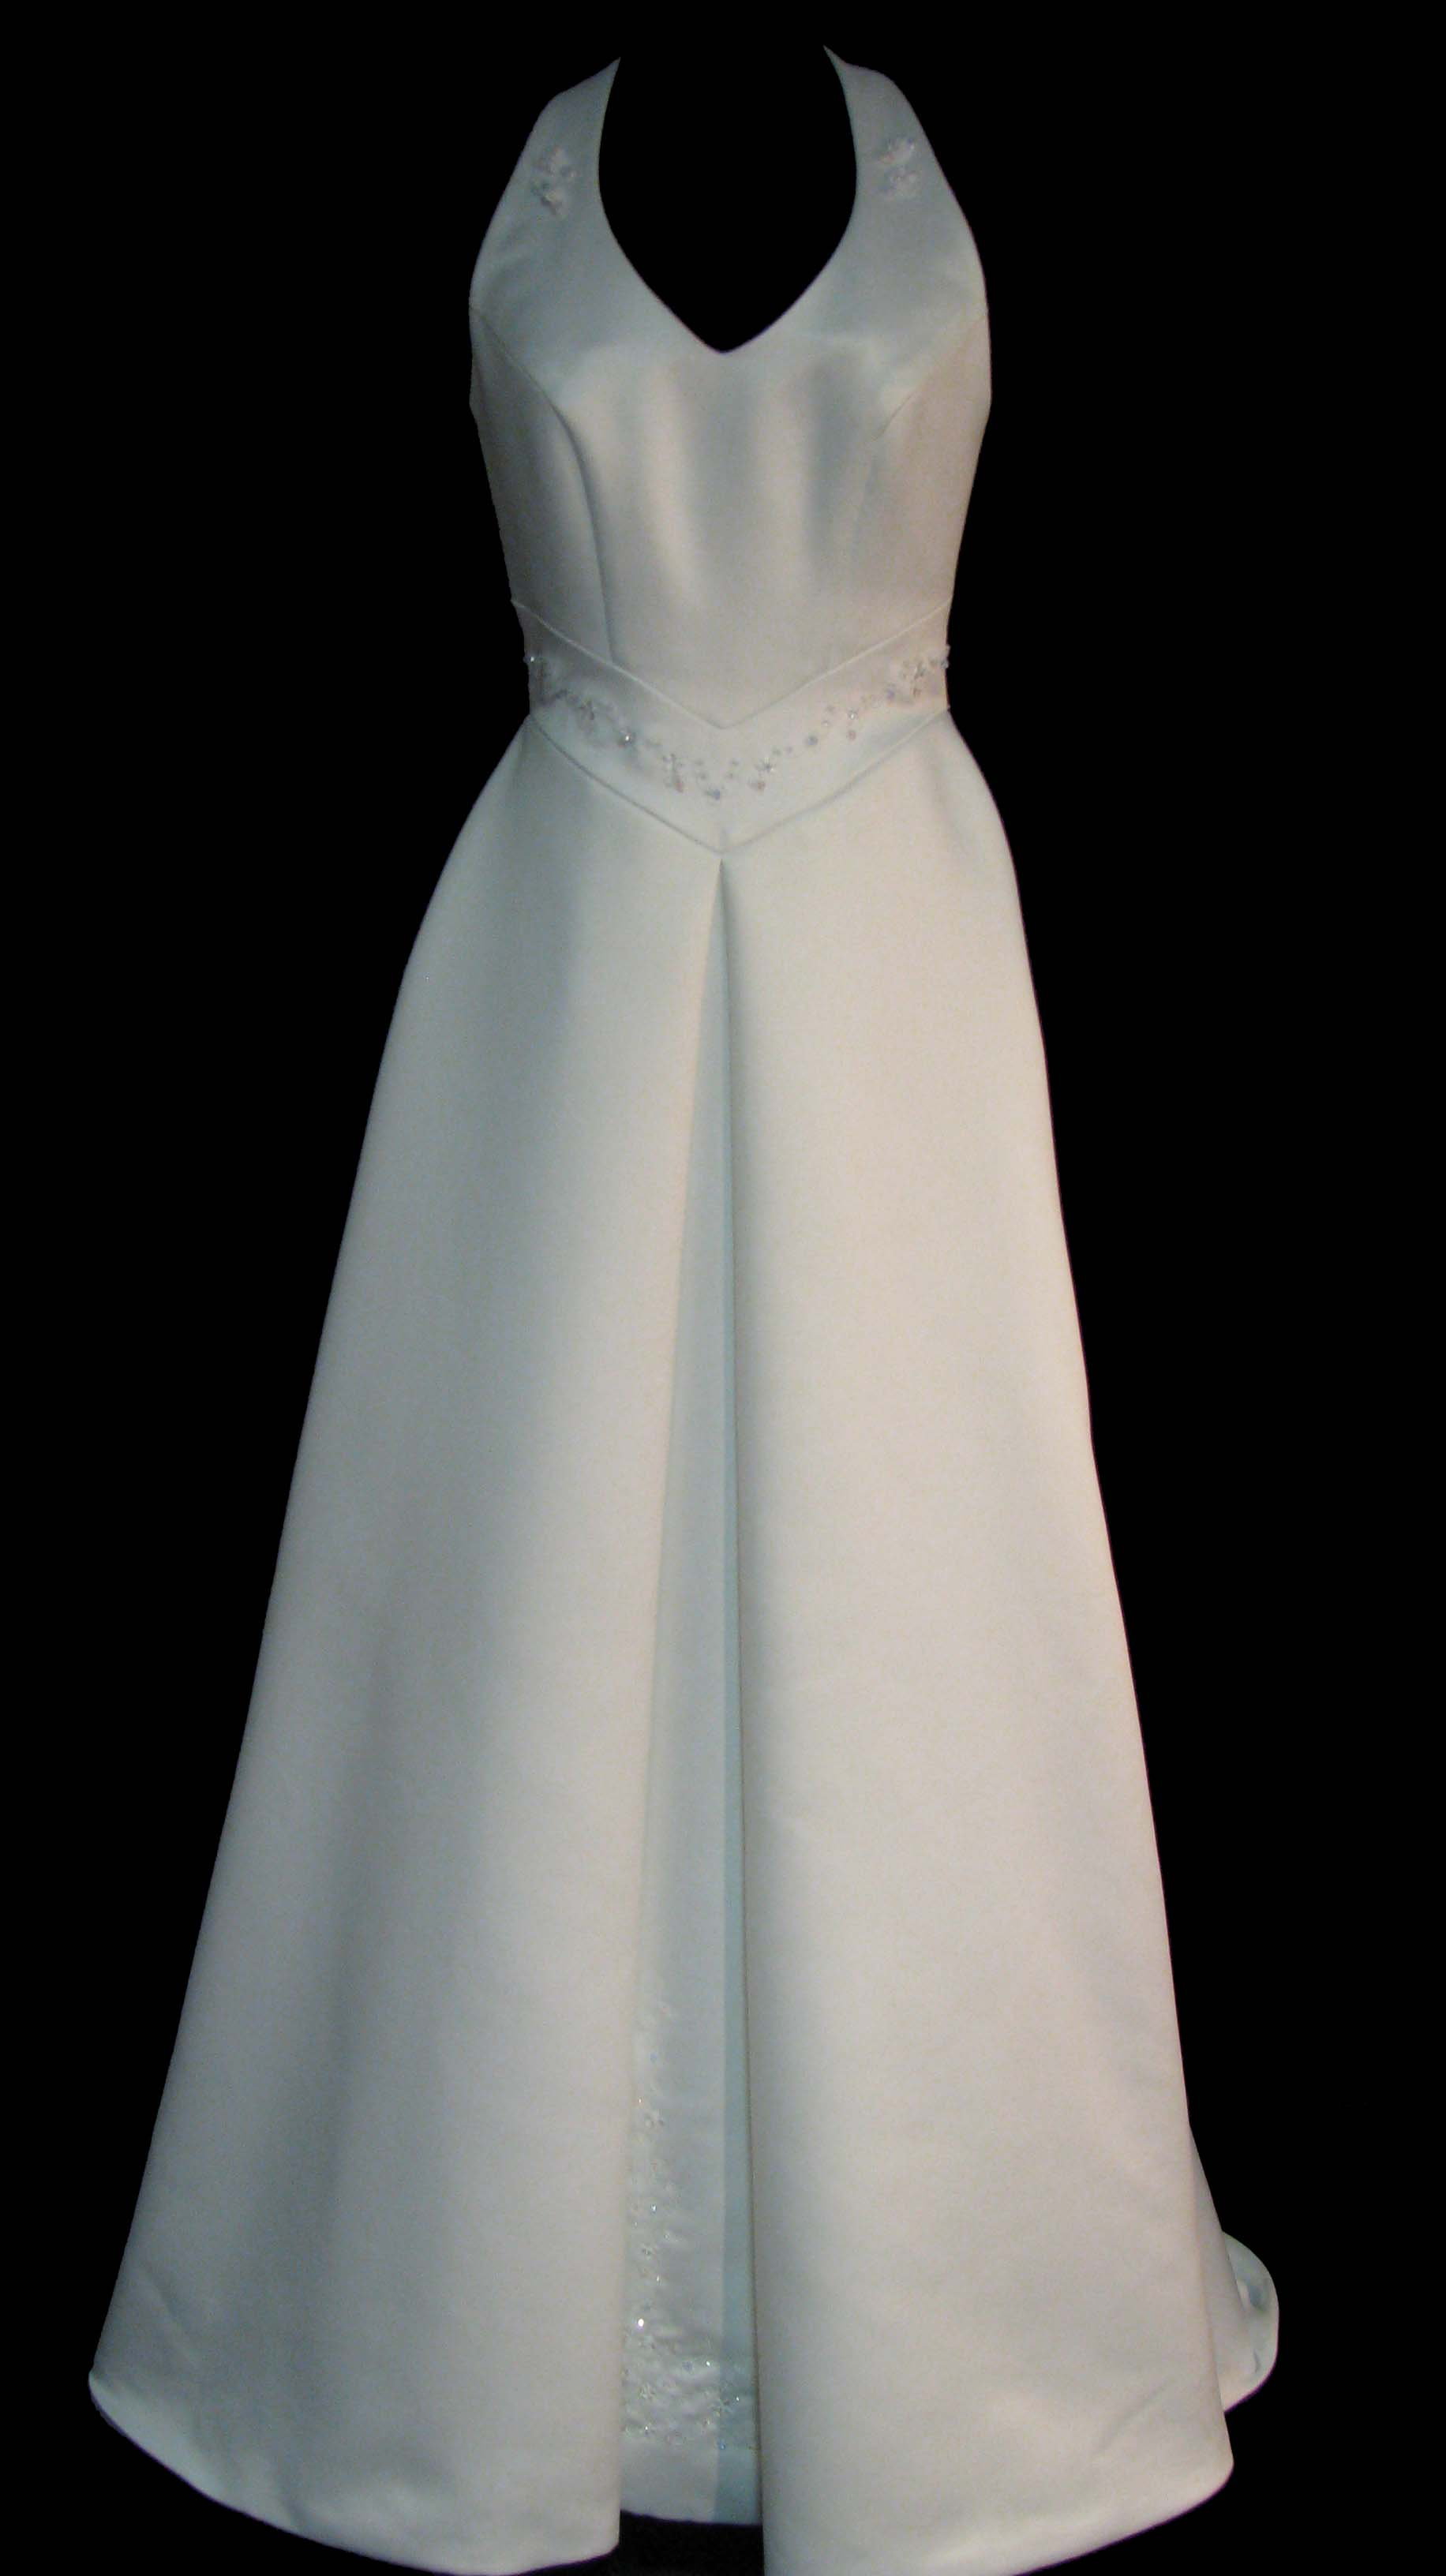 52-168frontf.jpg Madison Collection Gown 2052-168